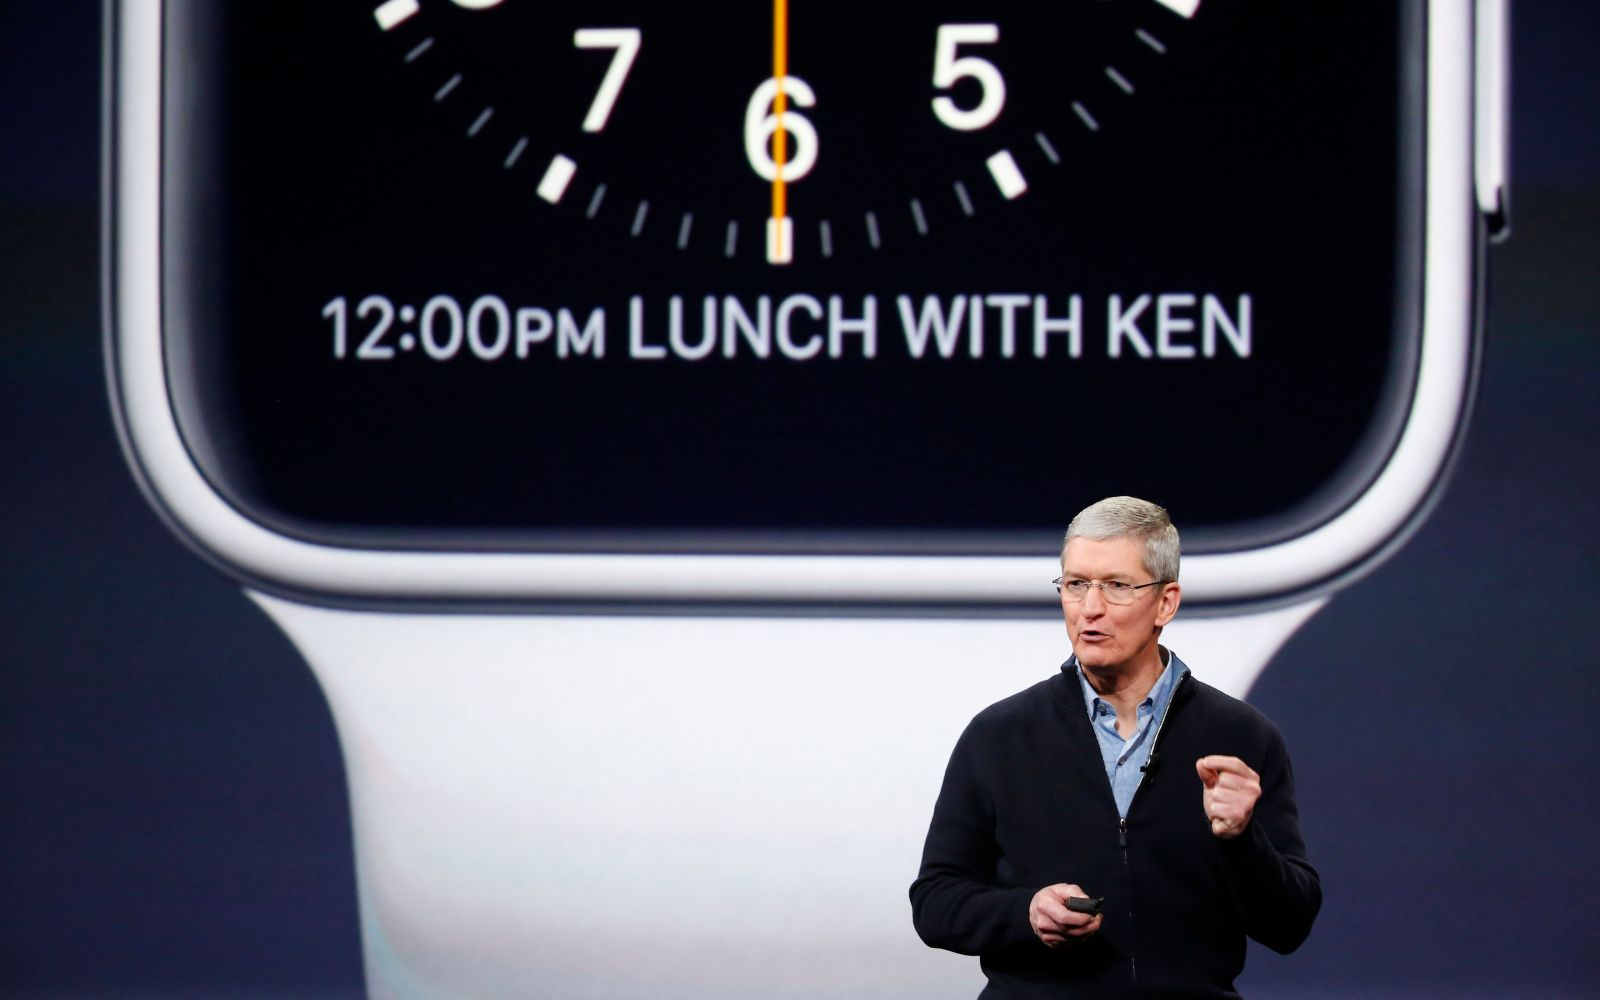 Tim Cook: Apple employees will get 50% off Apple Watch, 1000+ apps submitted